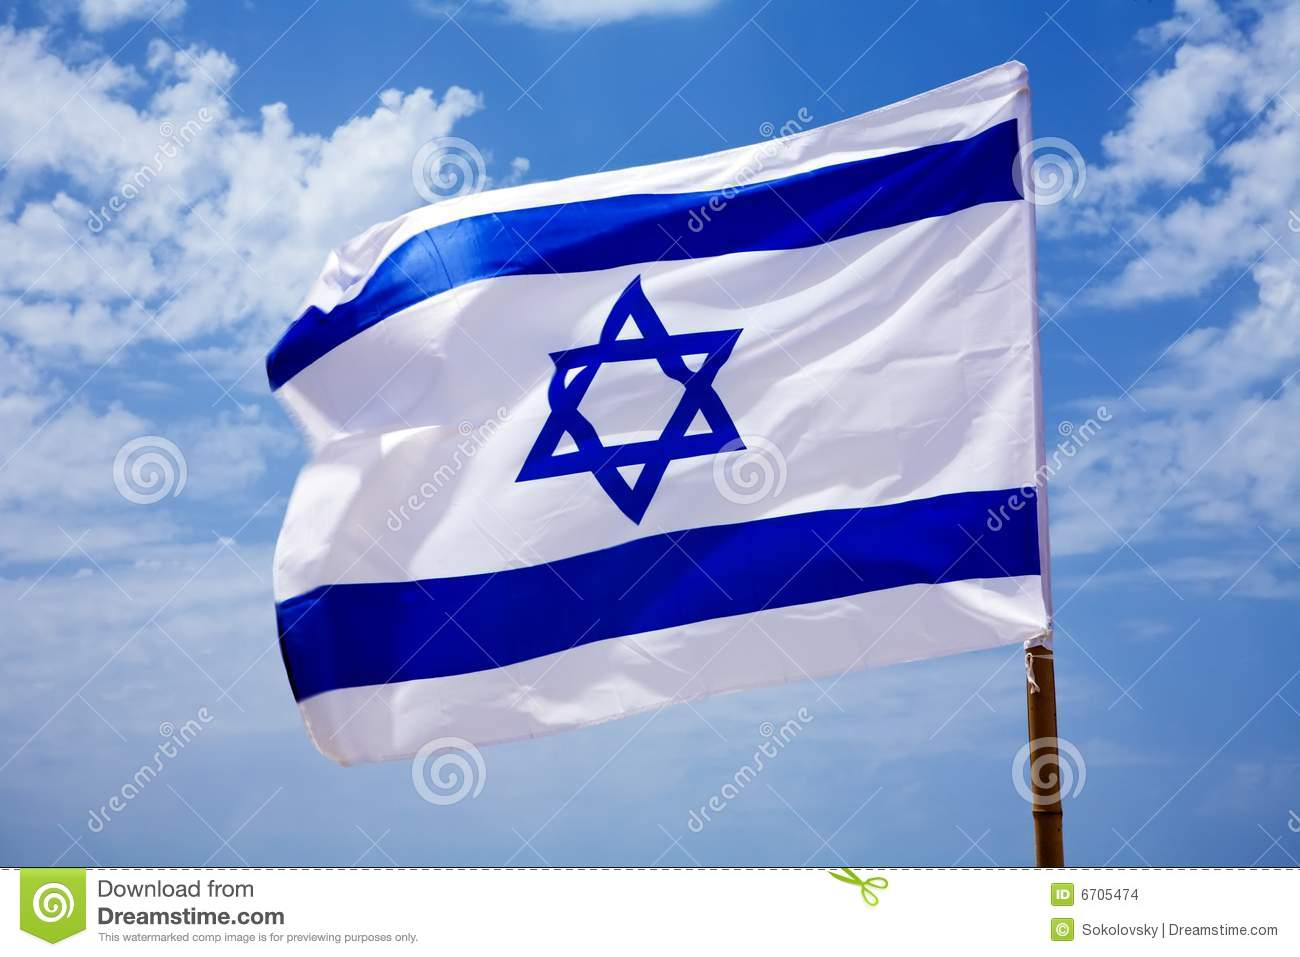 Israel's National Flag (Wallpaper) by CalebEanes on DeviantArt